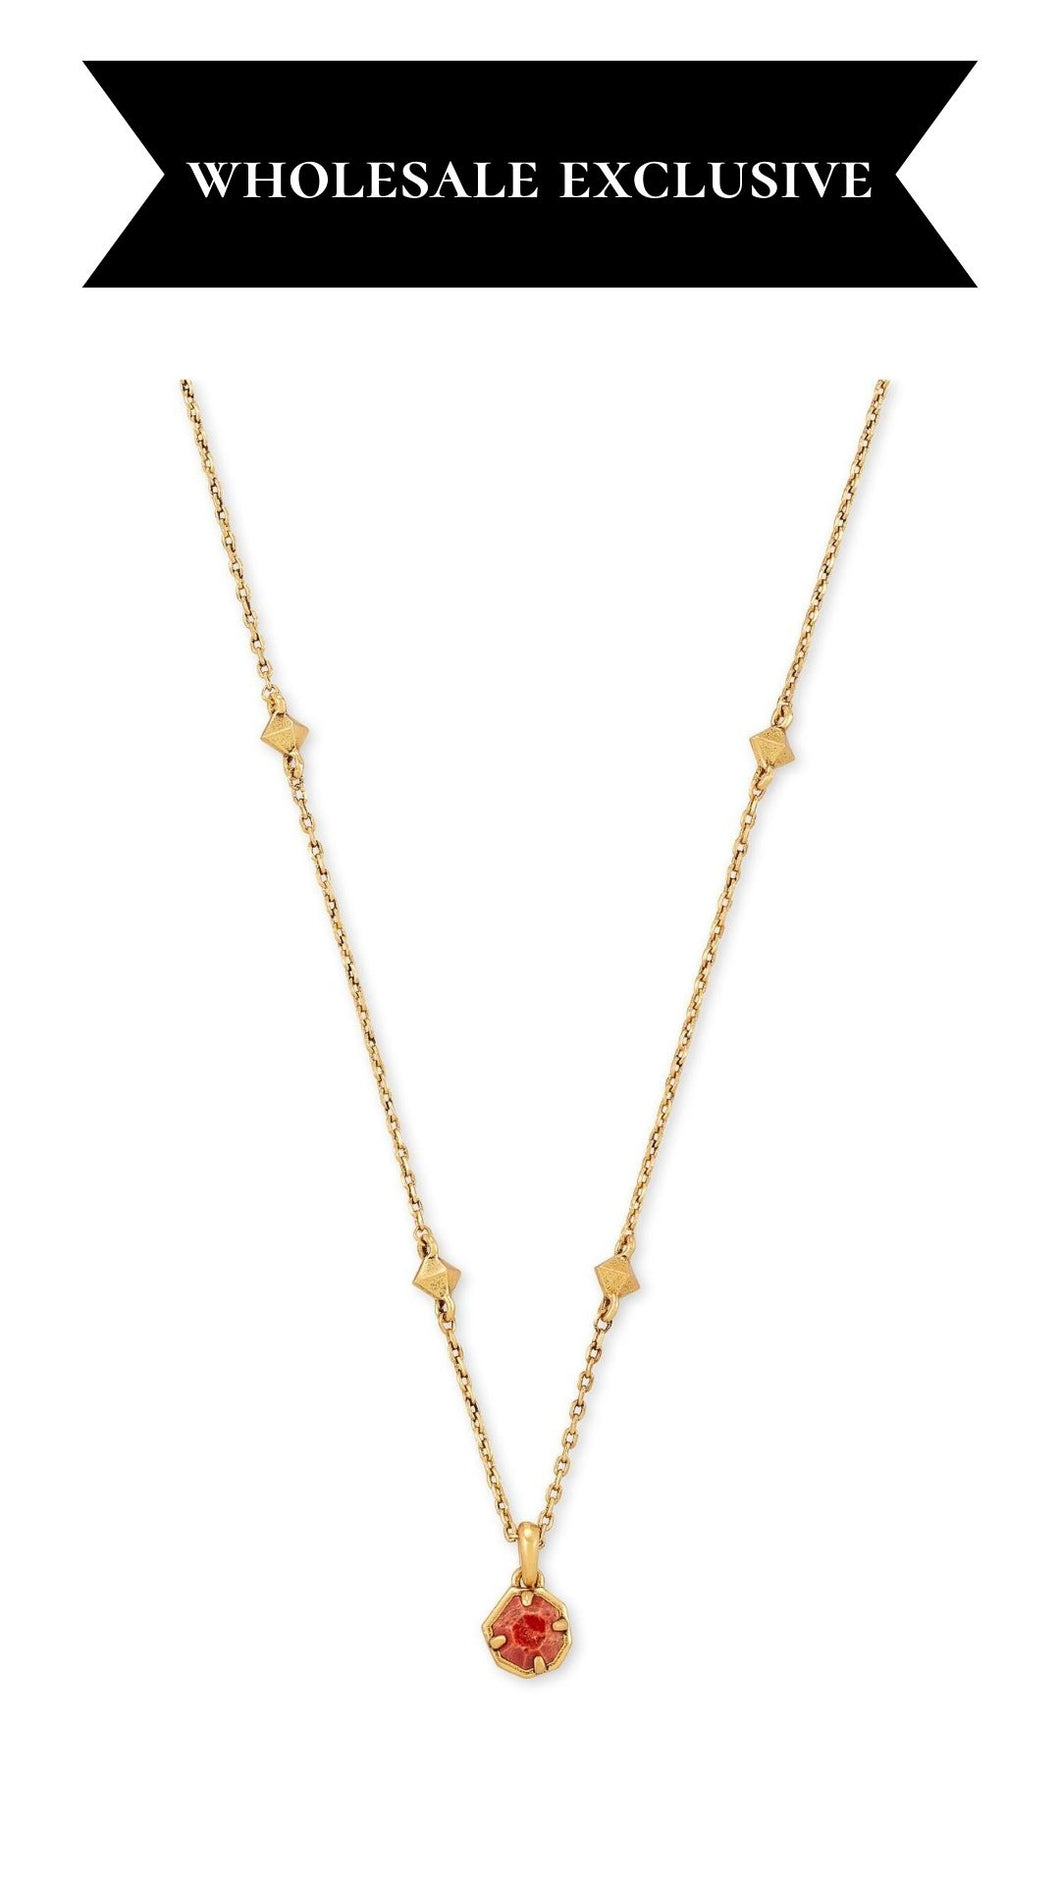 Nola Vintage Gold Short Pendant Necklace